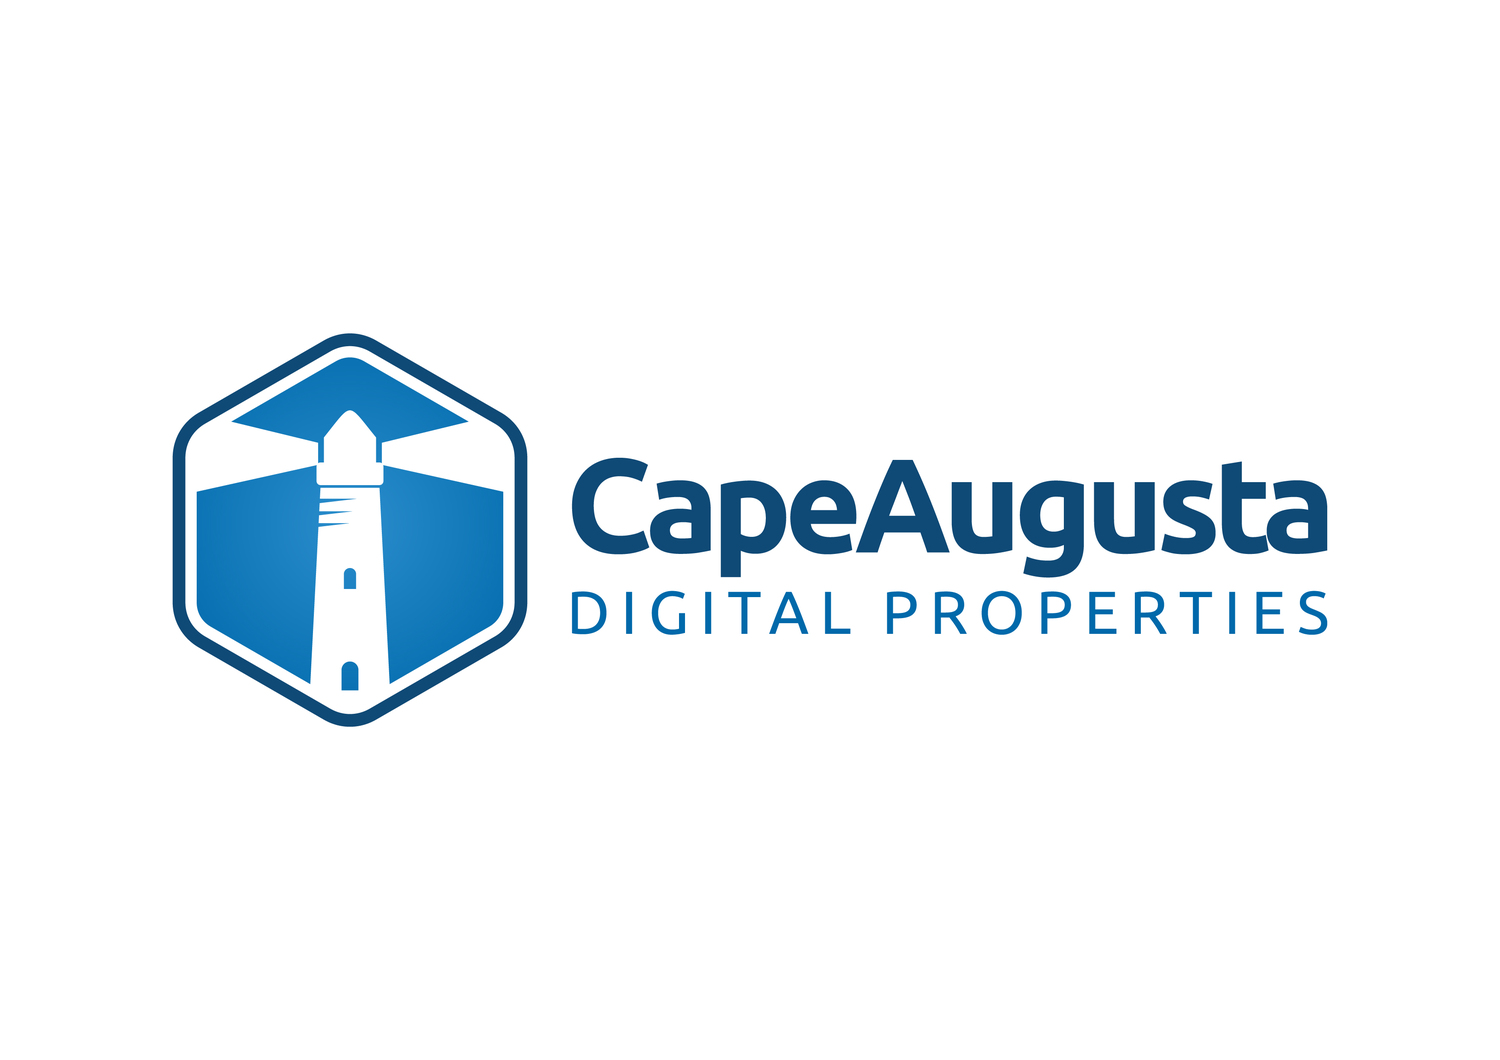 Cape Augusta Digital Properties